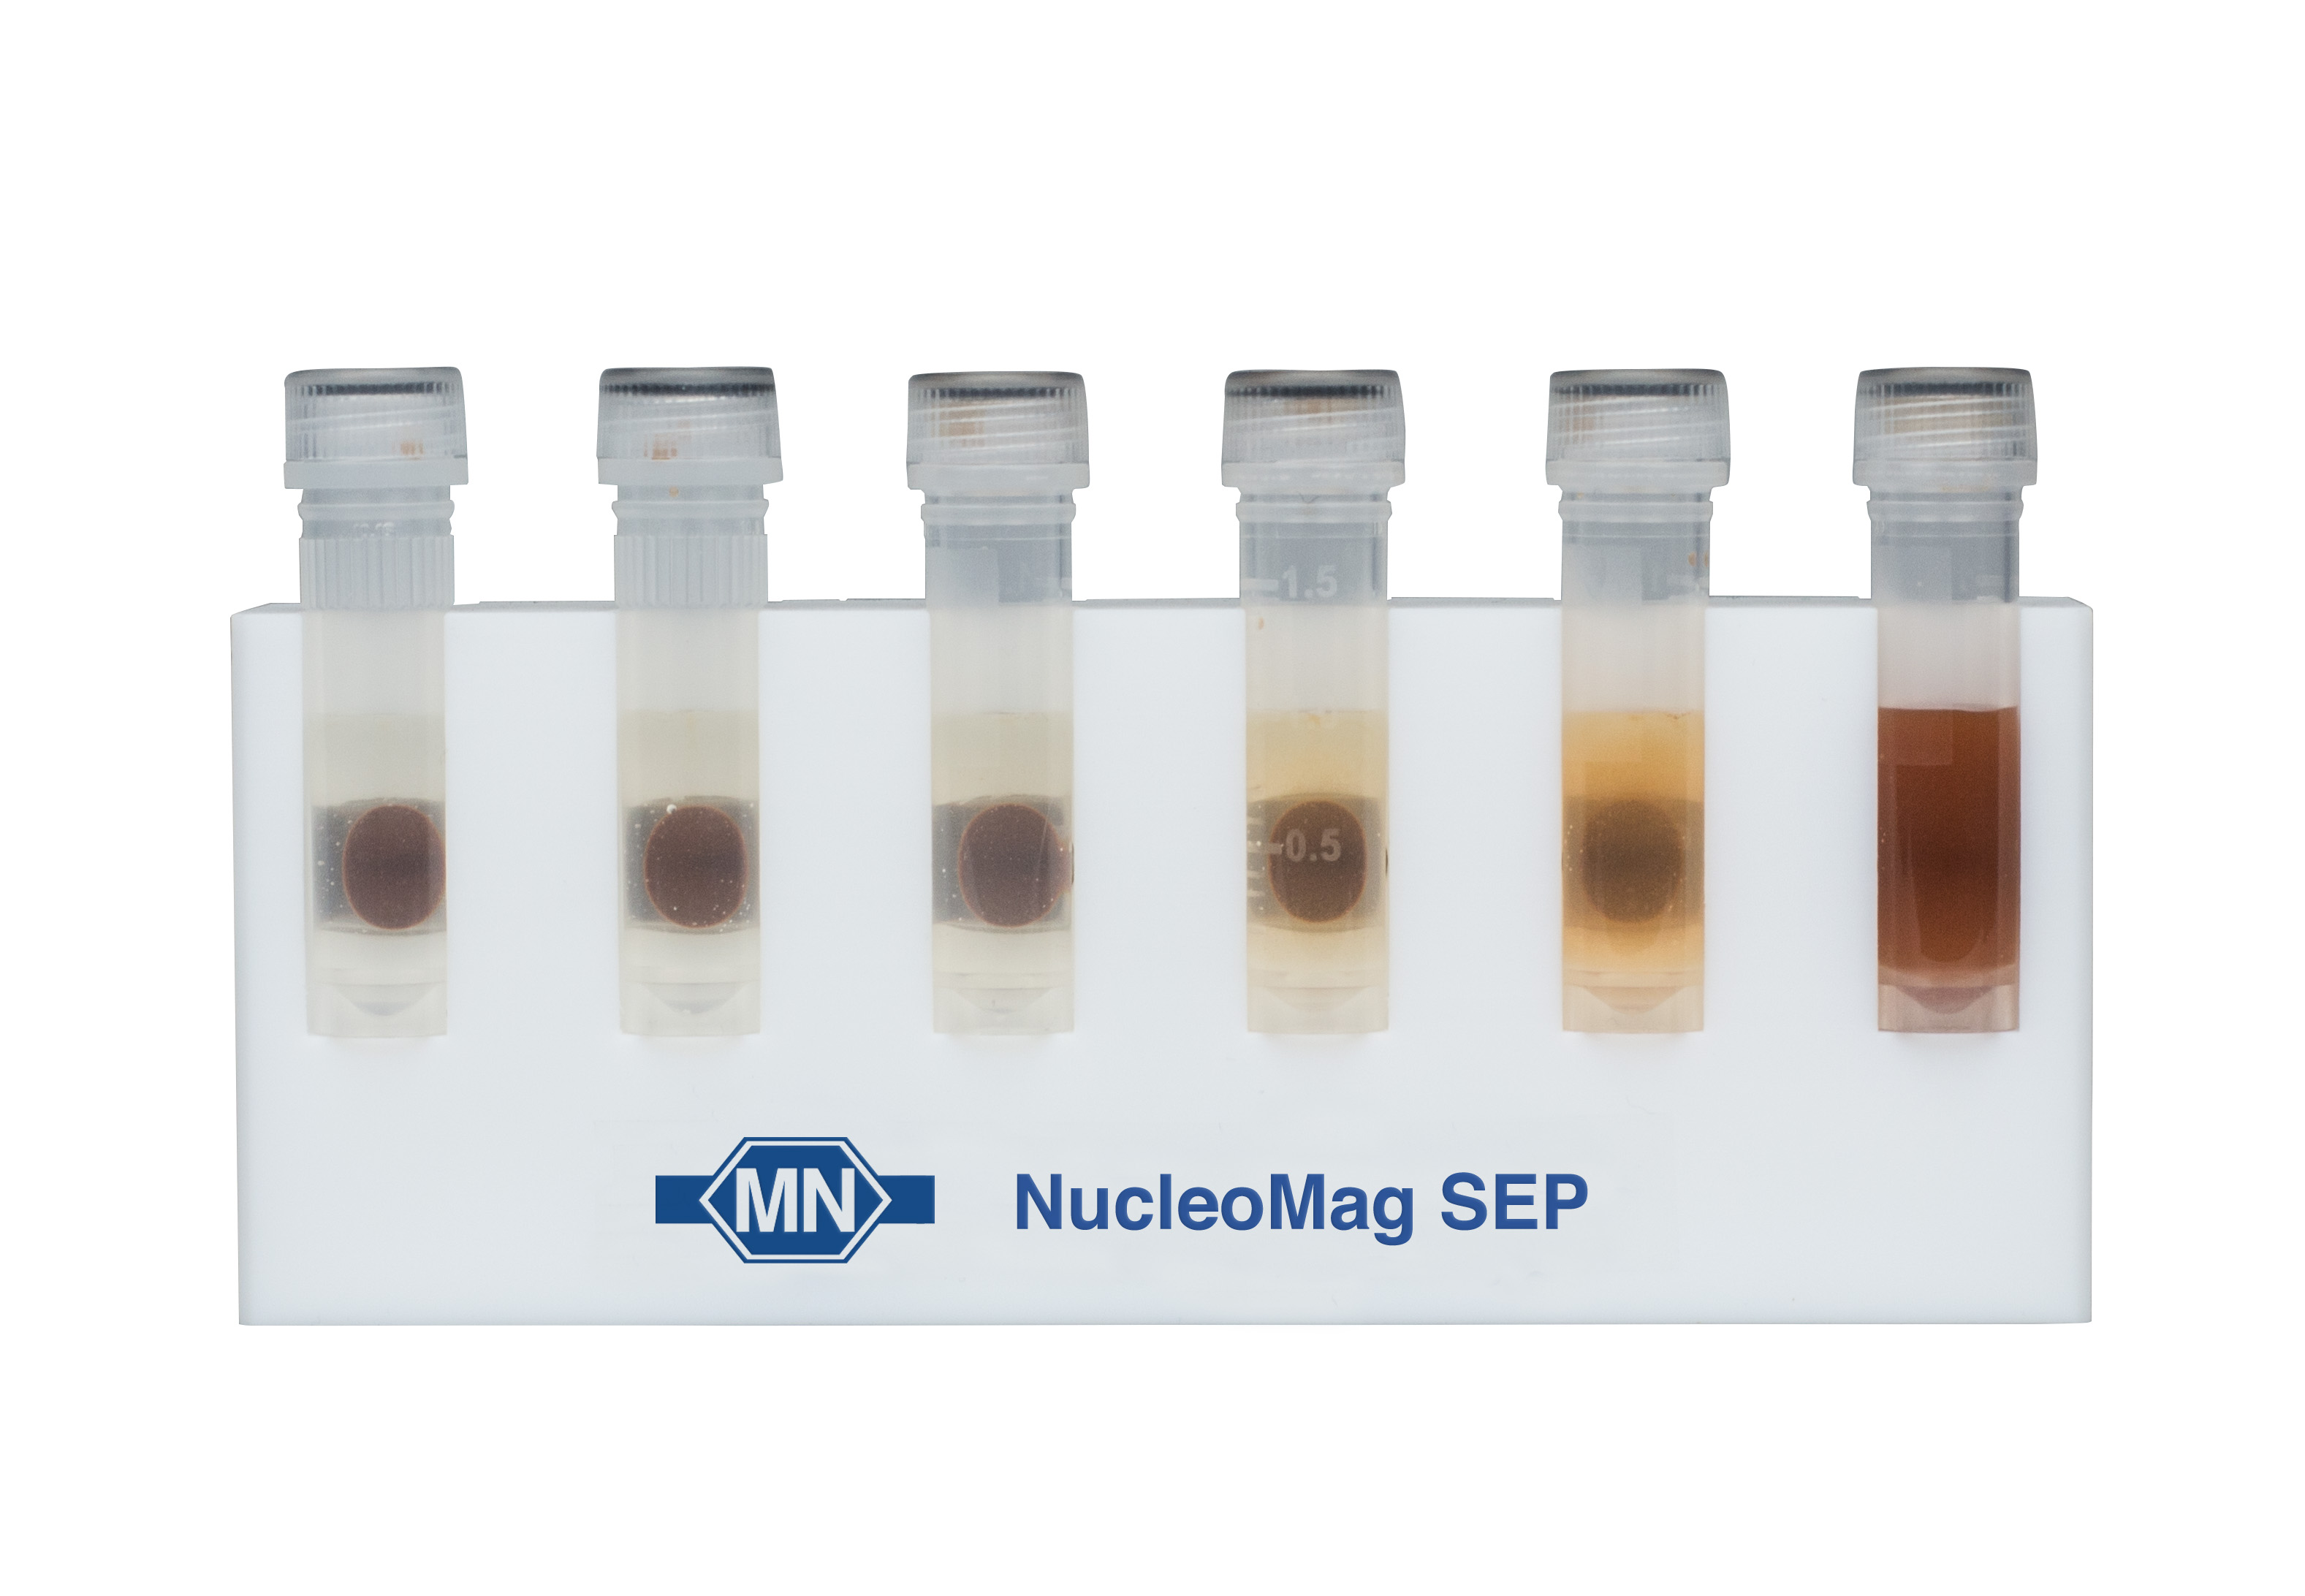 NucleoMag SEP Mini: magnetic separator for use with 1.5 ml or 2-ml tubes